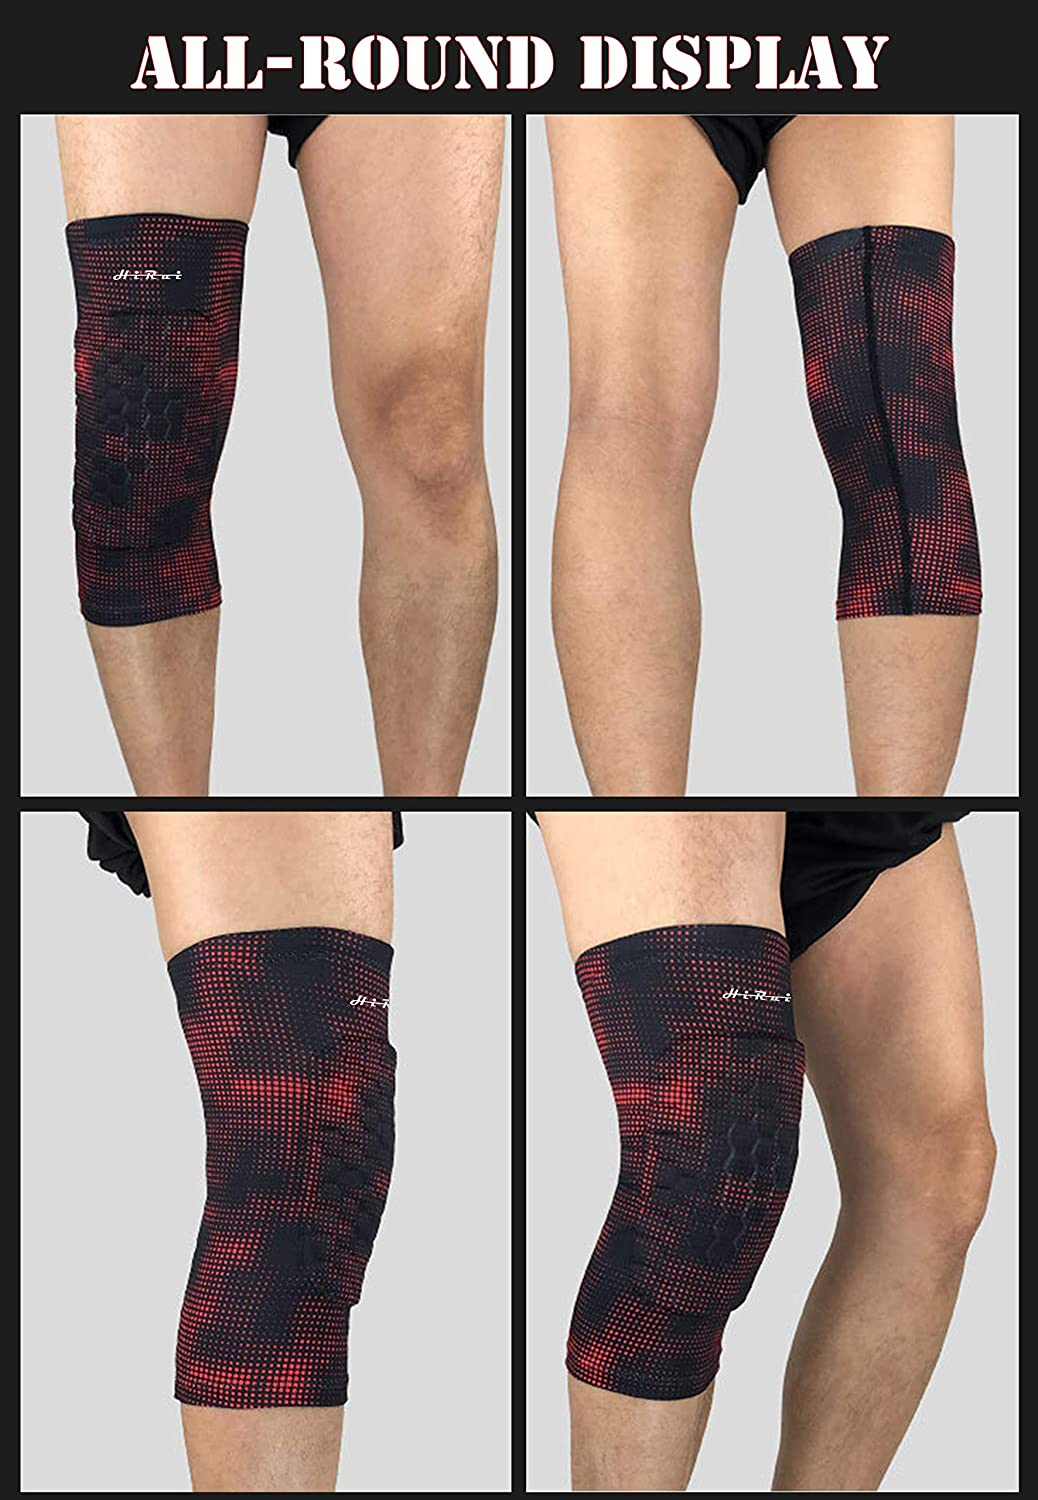 Honeycomb Crashproof Football Basketball Kneepad HiRui Knee Pad Knee Brace Knee Support Kids Youth Women Men Compression Leg Sleeves for Running Cycling Pain Relief